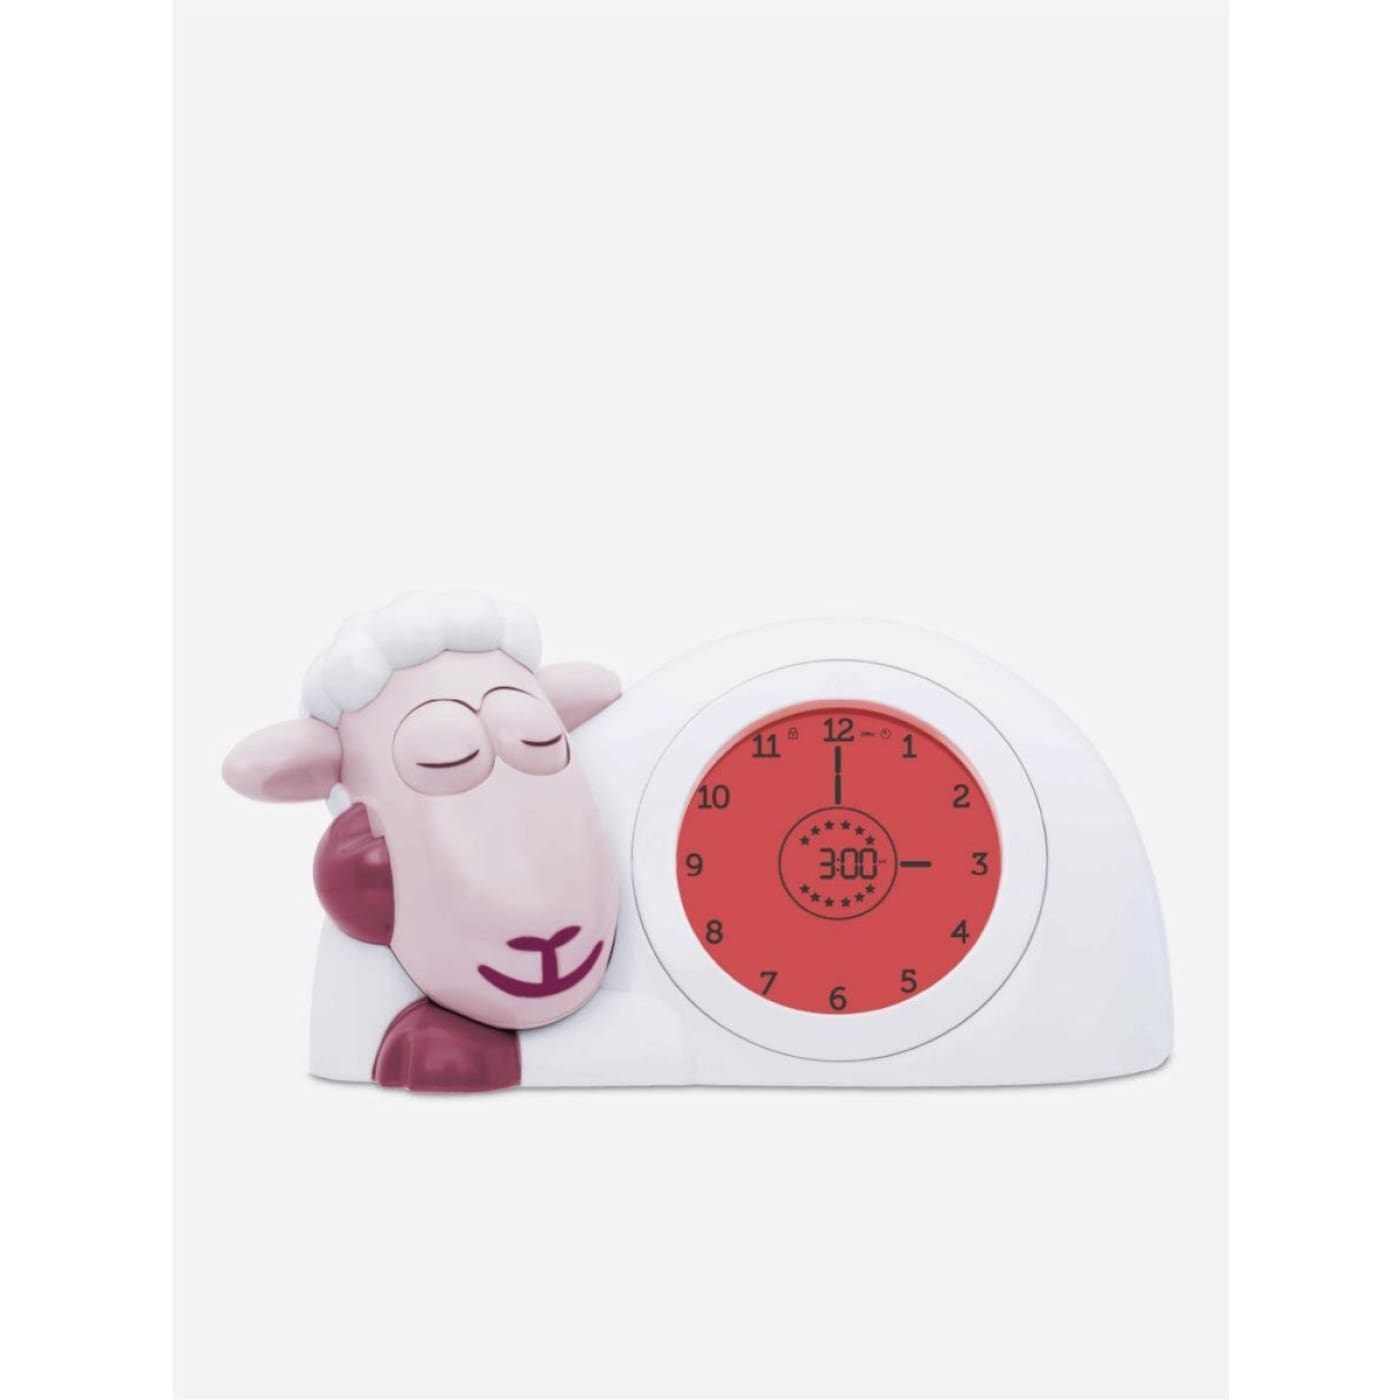 ZAZU Sleeptrainer SAM - Pink - Pink - NURSERY & BEDTIME - SLEEP AIDS/NIGHT LIGHTS